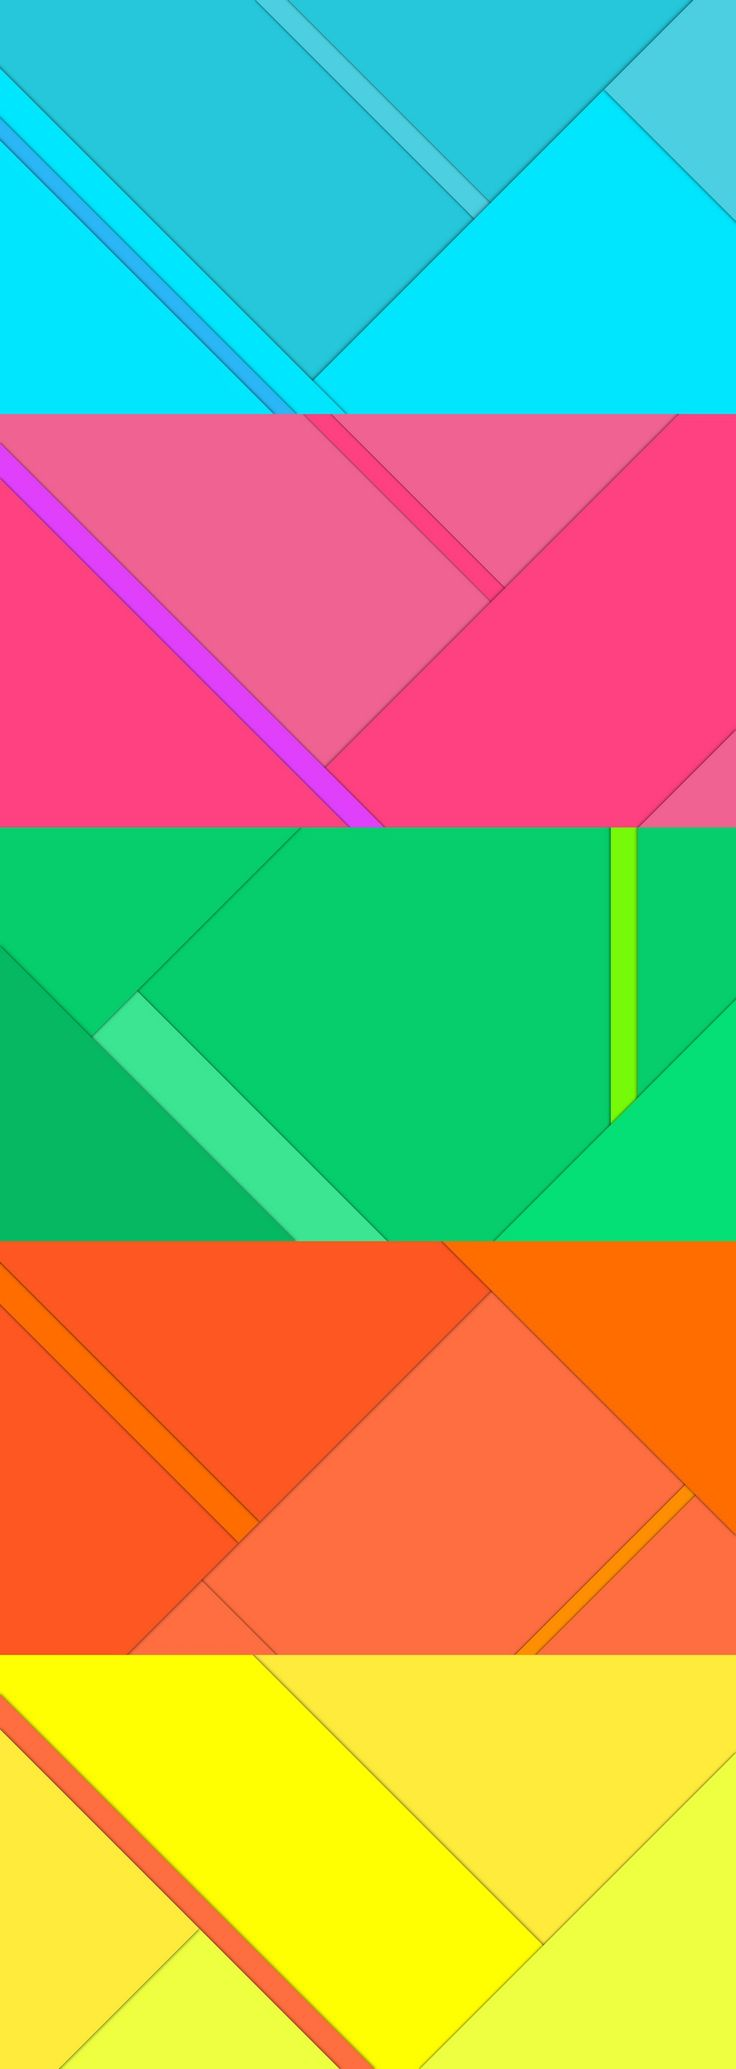 MATERIAL DESIGN BACKGROUNDS Material Design Backgrounds. Set of five background- wallpapers in material design. Blue, pink, green, orange and yellow colors. #material #design #materialdesign #wallpaper #background #blue #pink #green #orange #yellow #layers #shadows #free #download #design #protium #protiumdesign #freebies #freebie